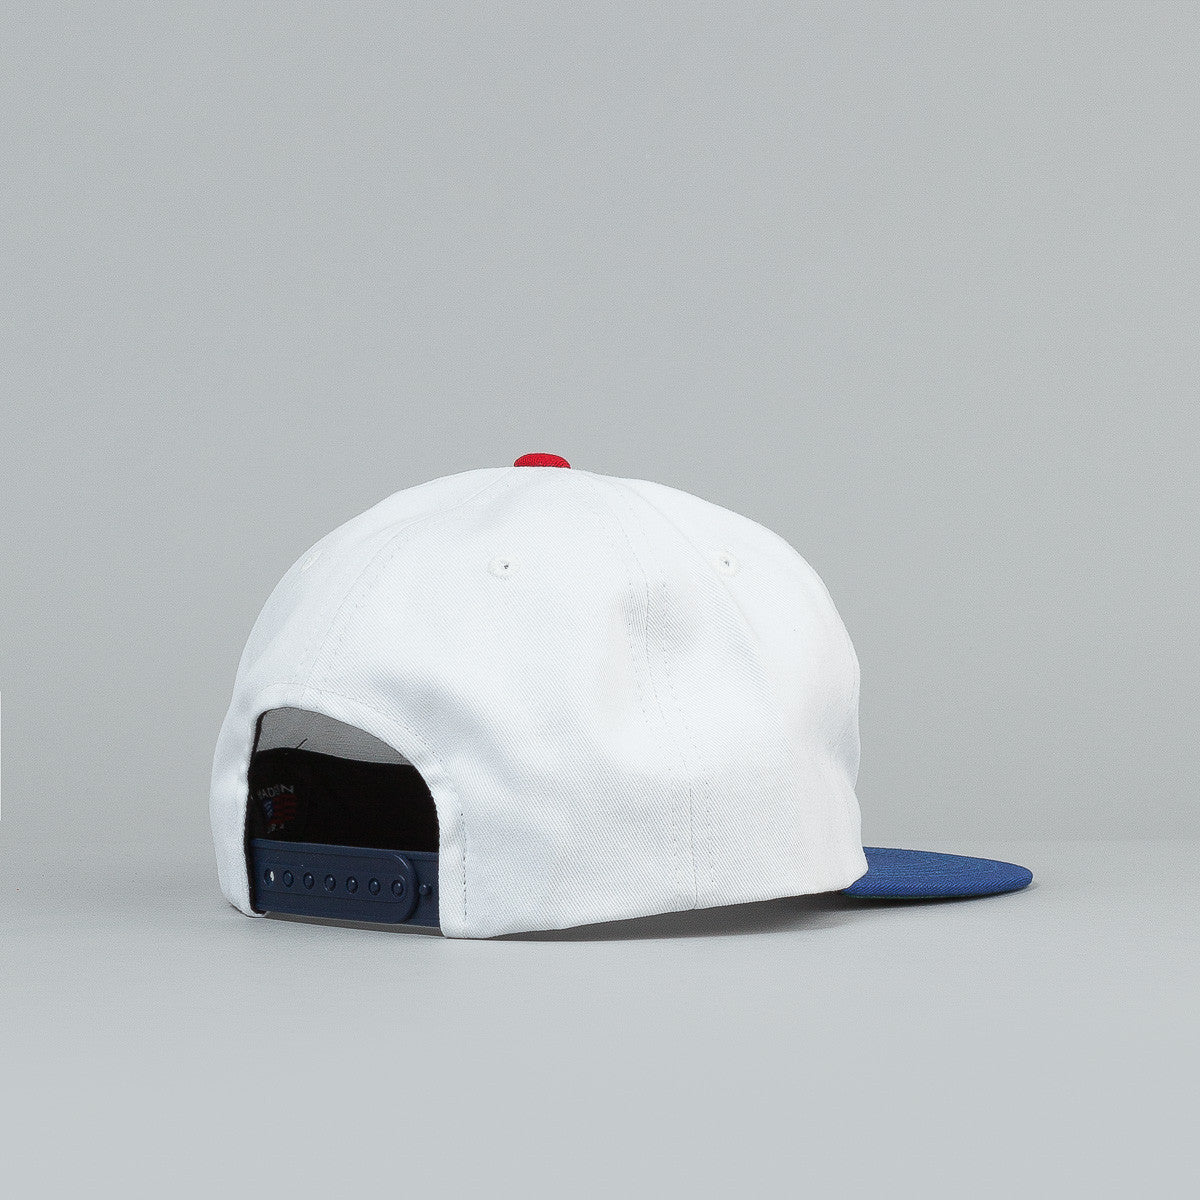 The Decades Spirit of '76 Snapback Cap - White / Blue